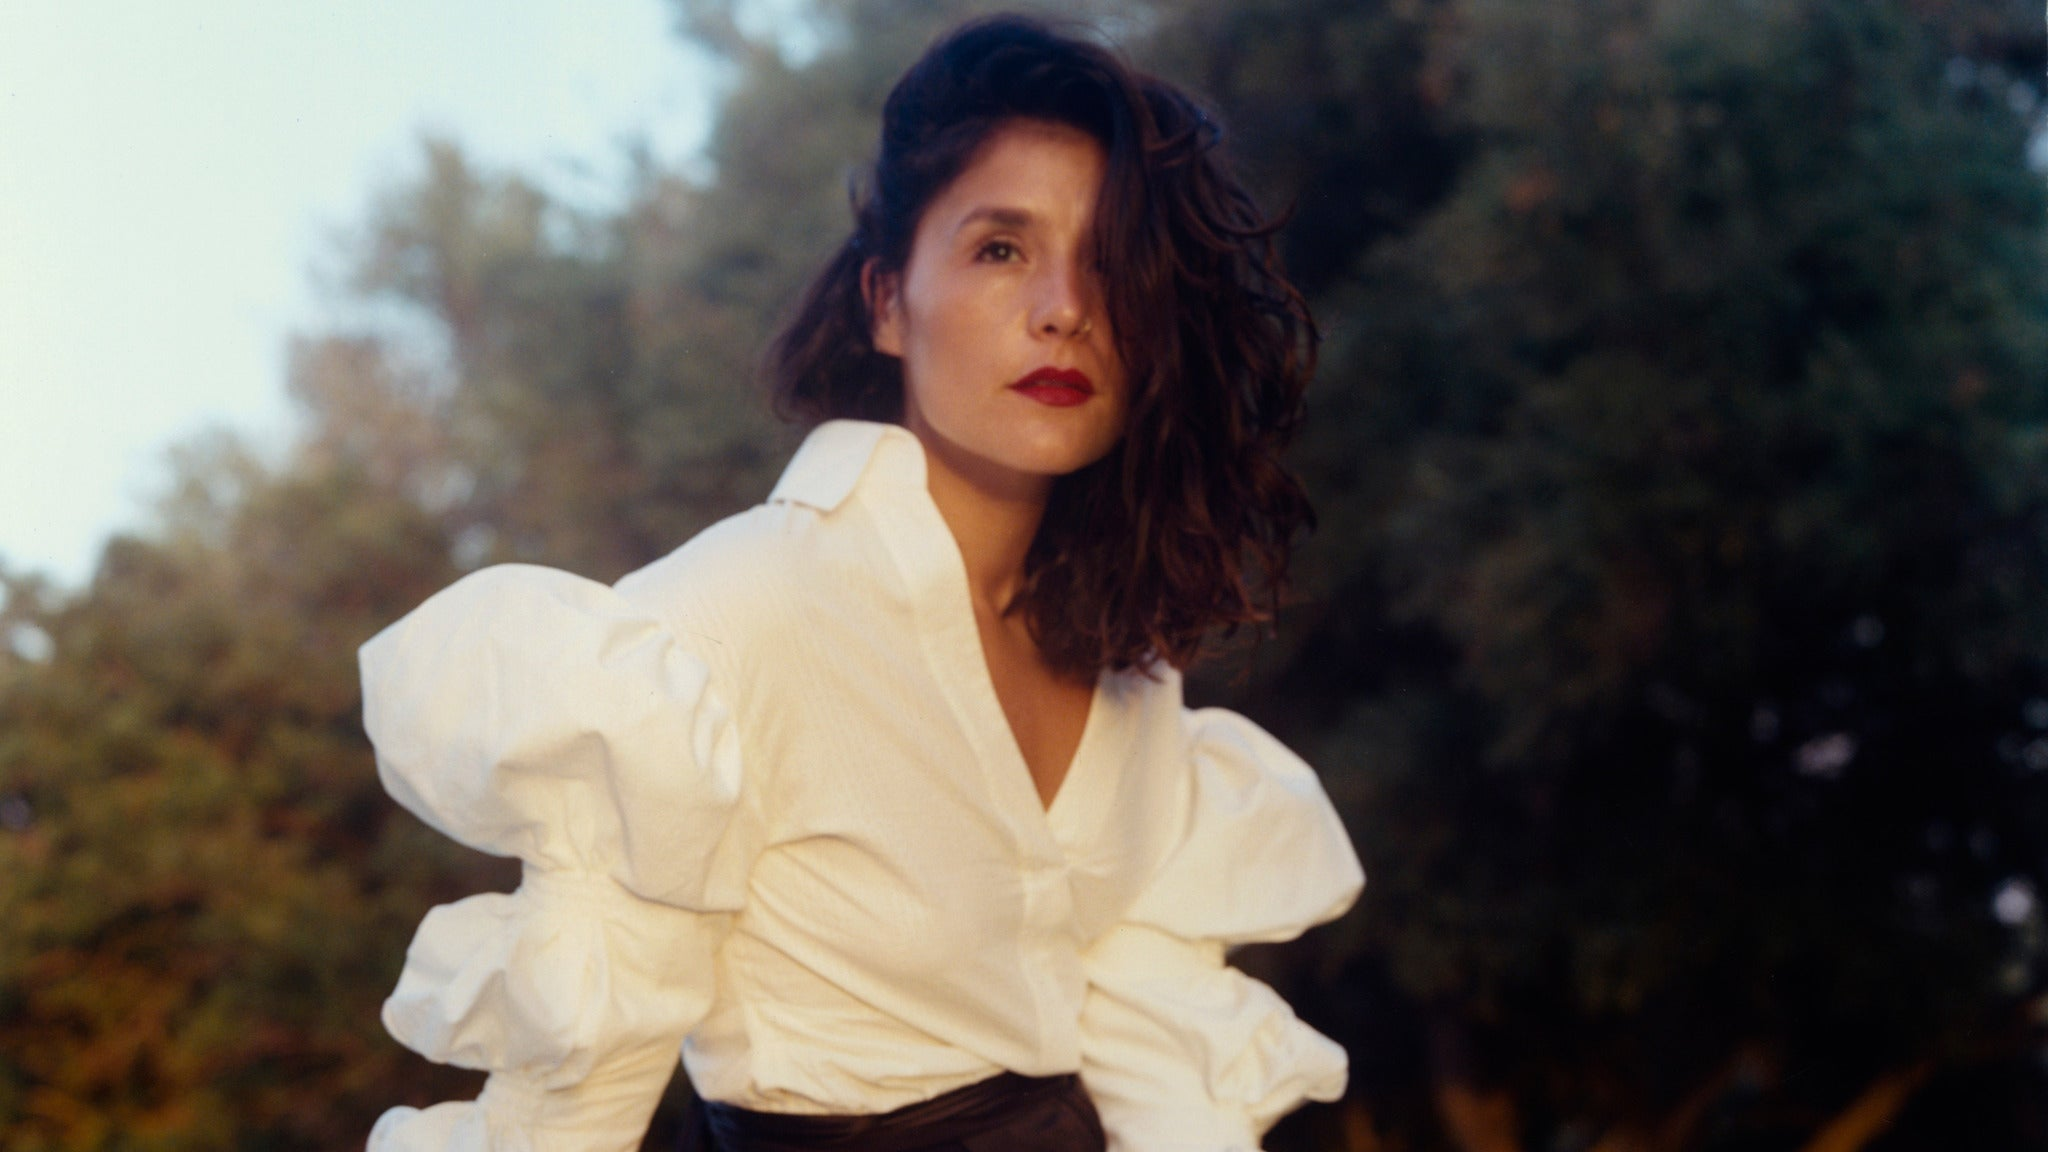 Jessie Ware, Albin Lee Maldau at Majestic Theatre